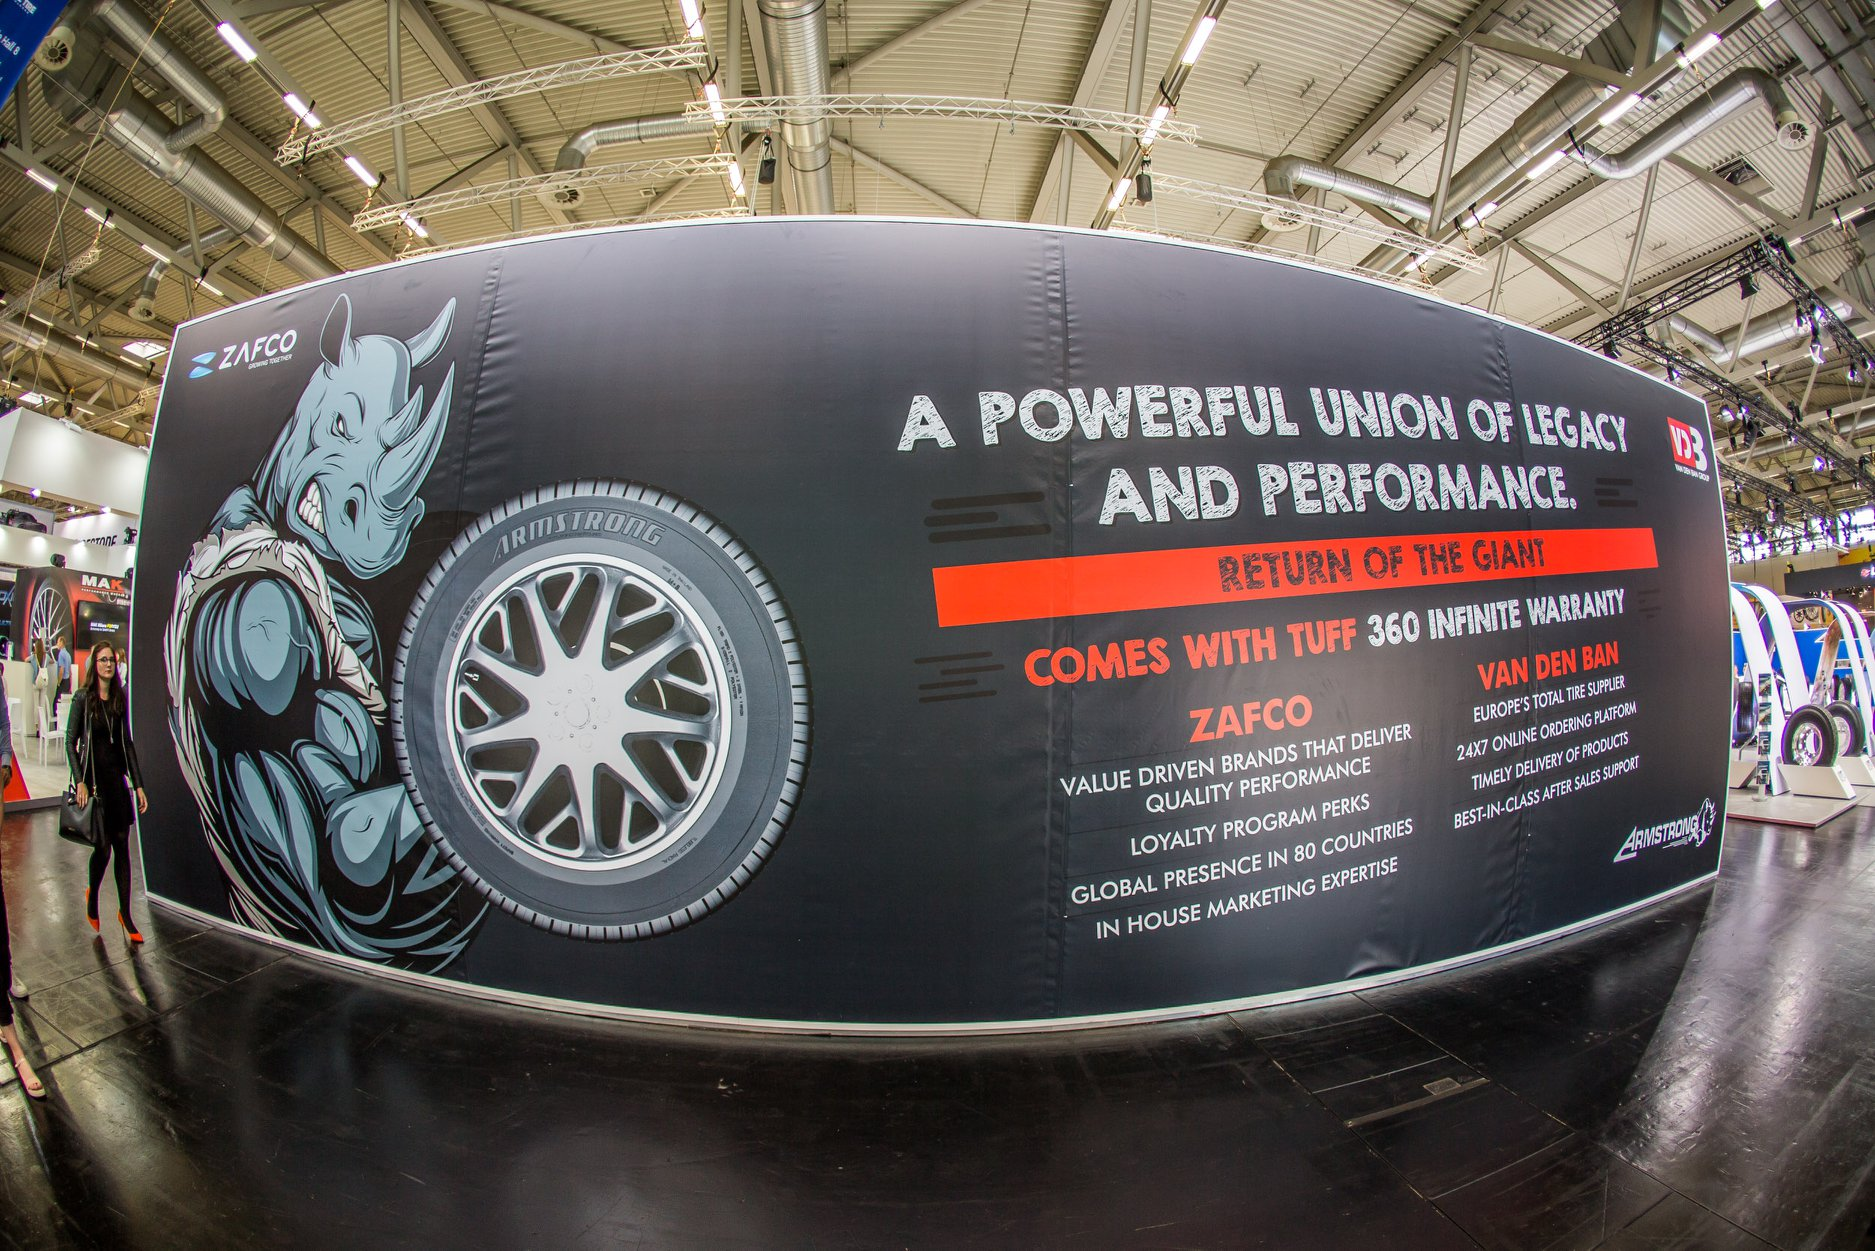 ZAFCO Teams up with Van Den Ban to Revive Armstrong Tire at Tire Cologne